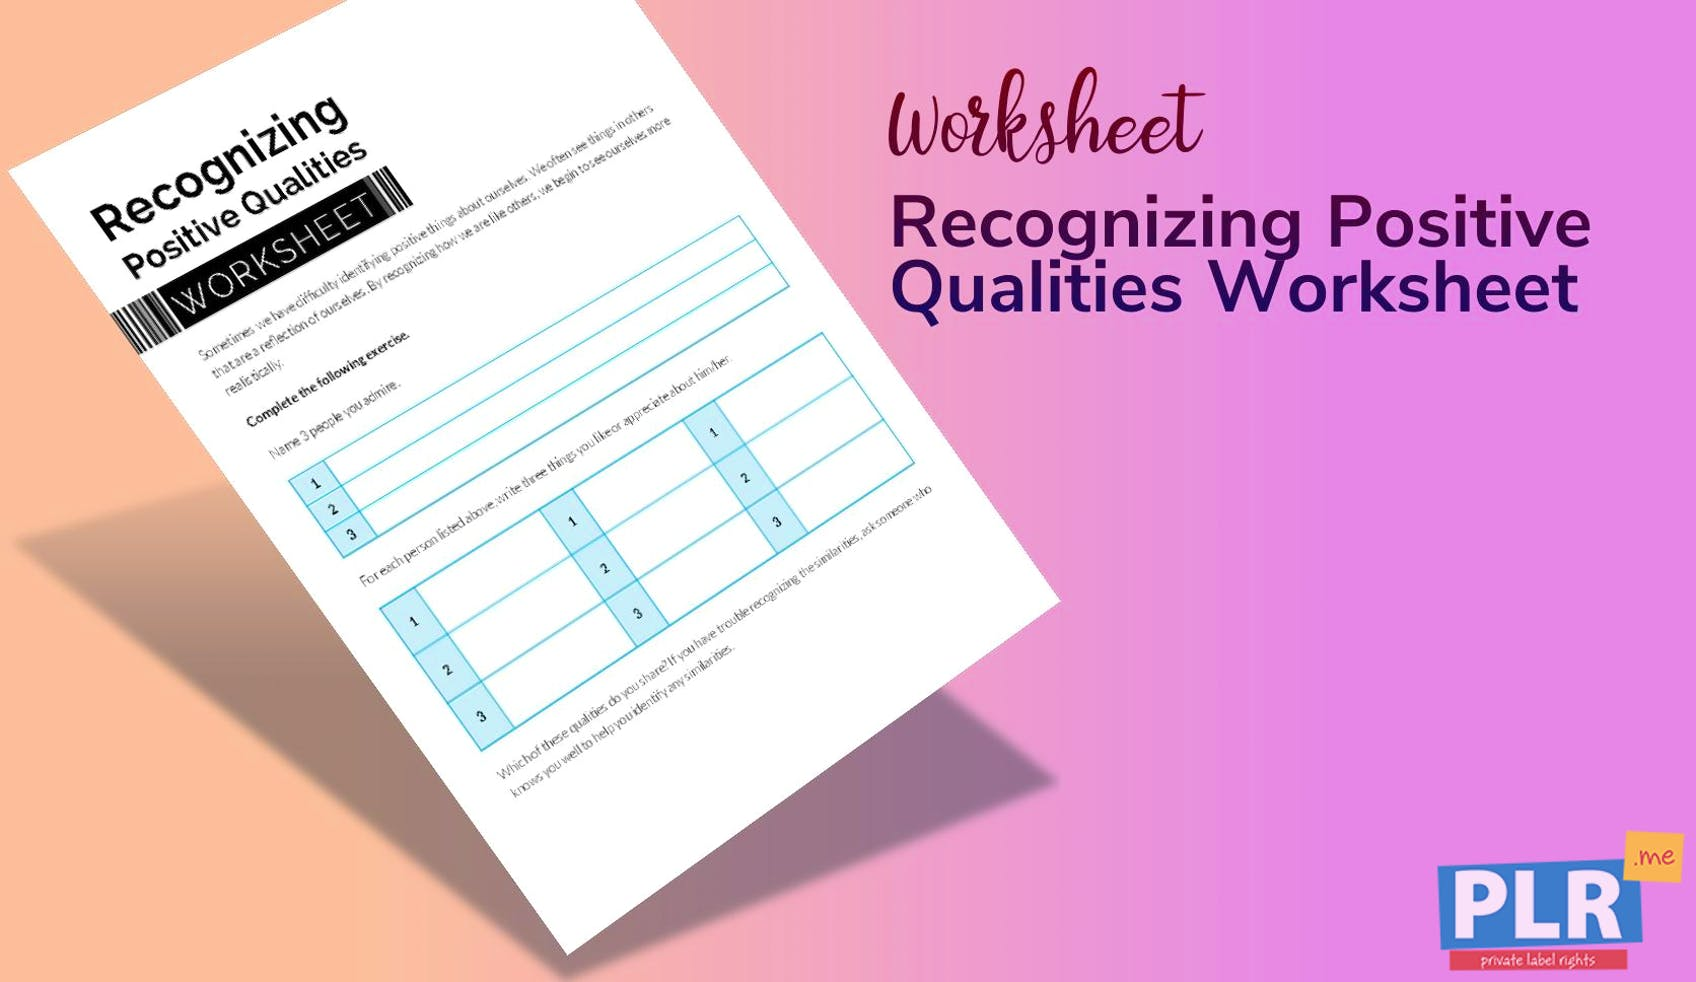 Recognizing Positive Qualities Worksheet